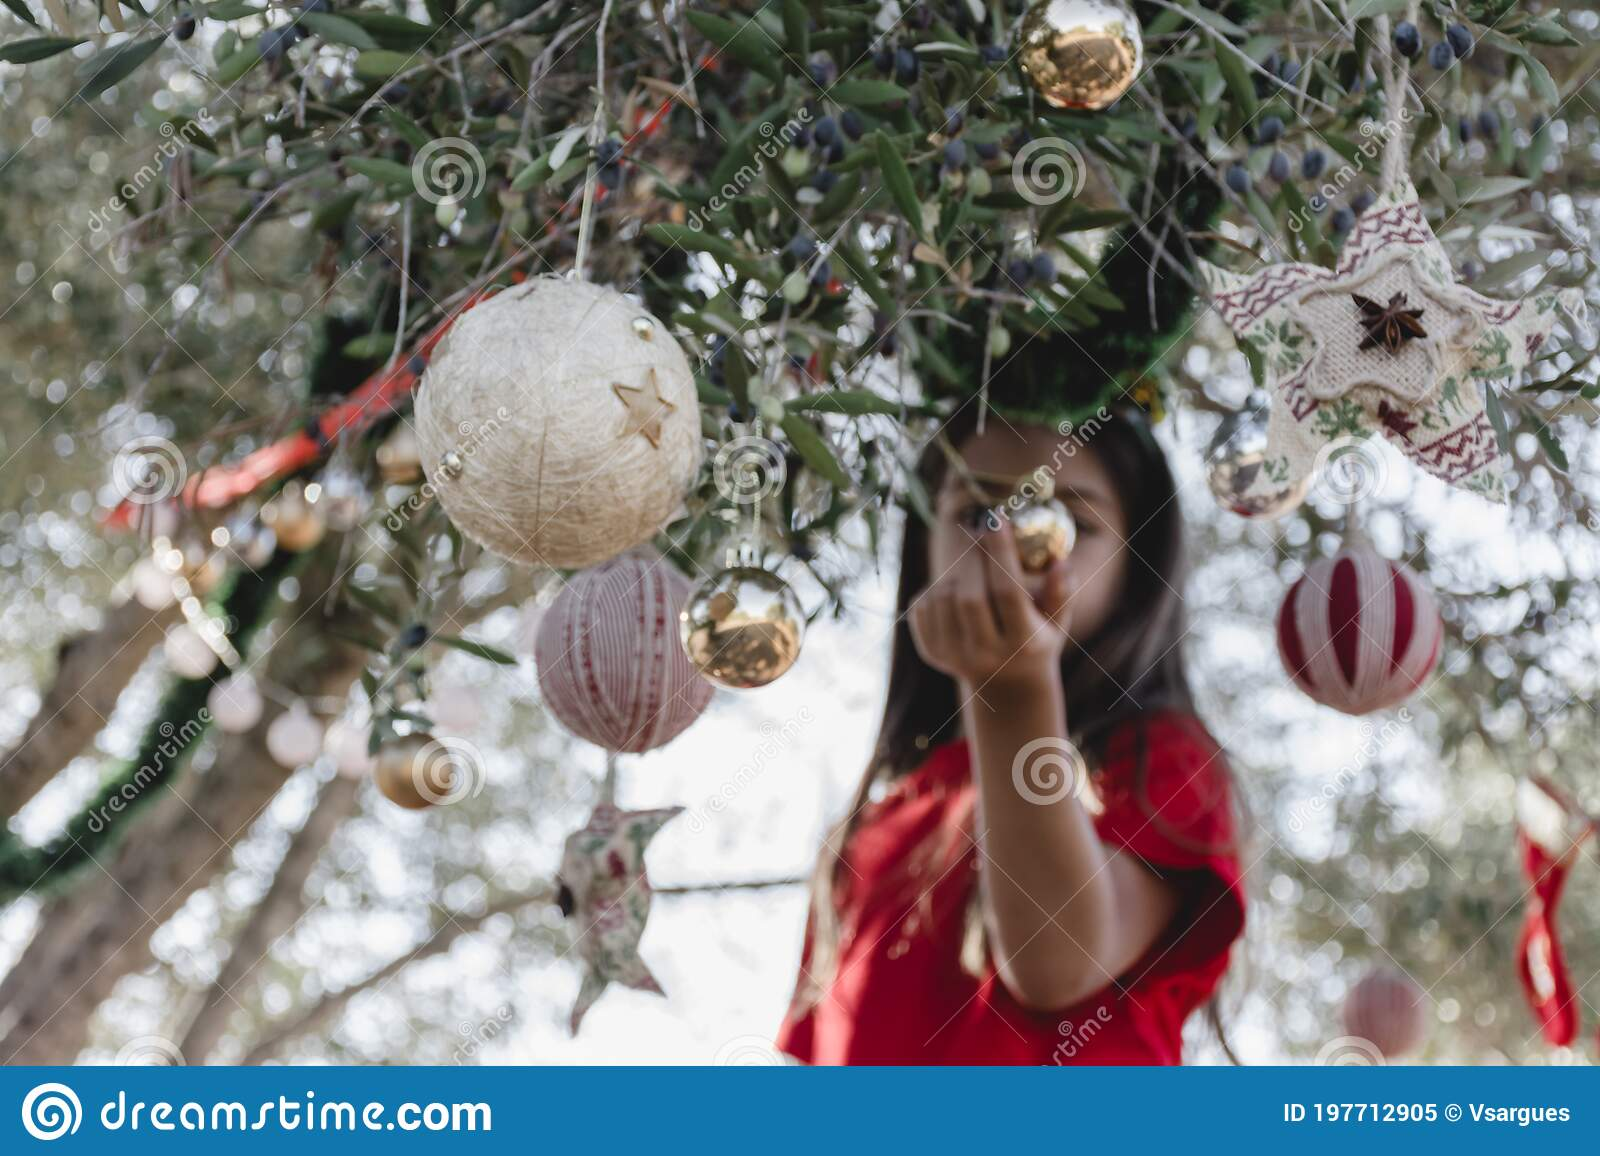 Christmas Decoration On An Olive Tree Stock Image Image Of Enjoyment Festive 197712905